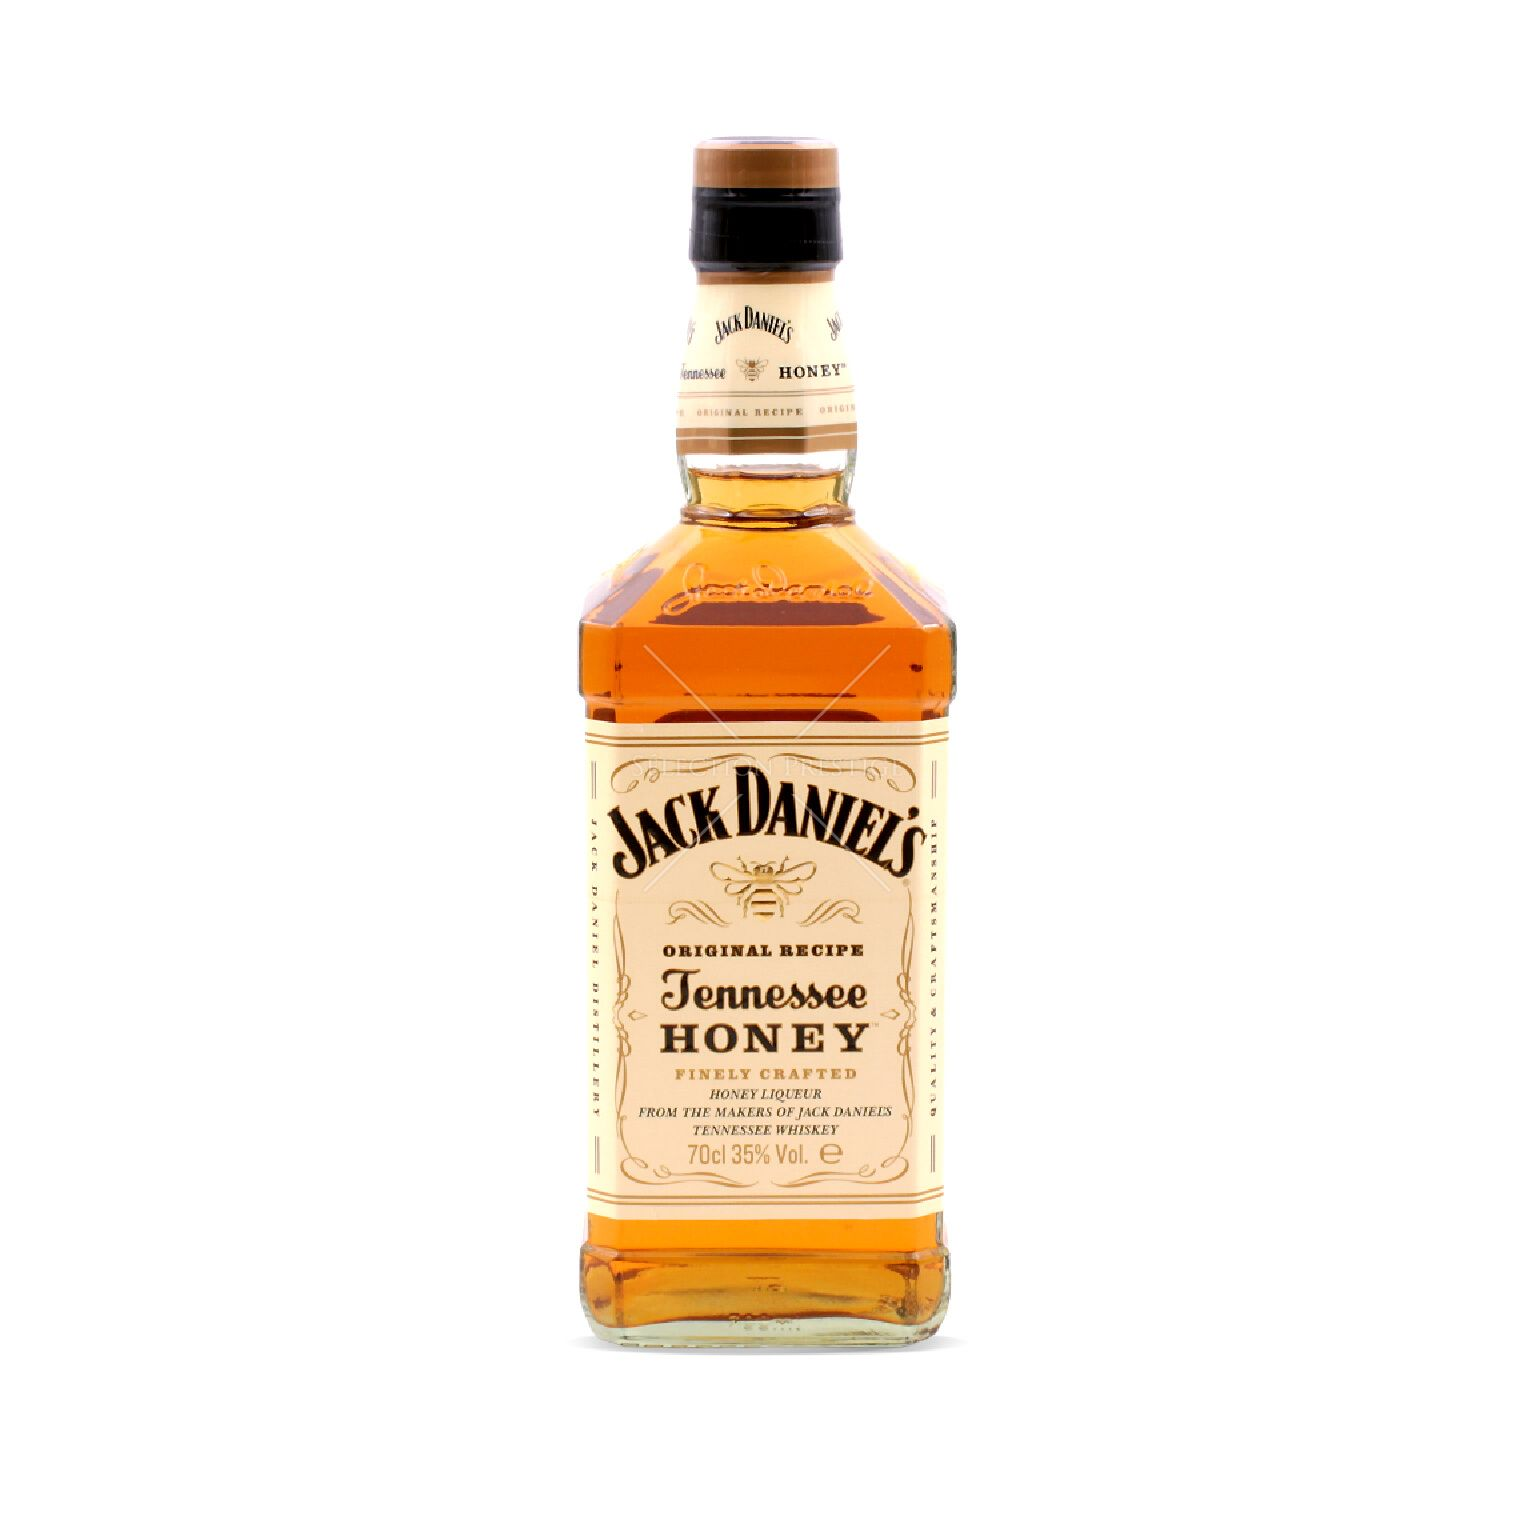 Jack Daniel's Tennessee Honey Liqueur 0.7L (35% Vol.)